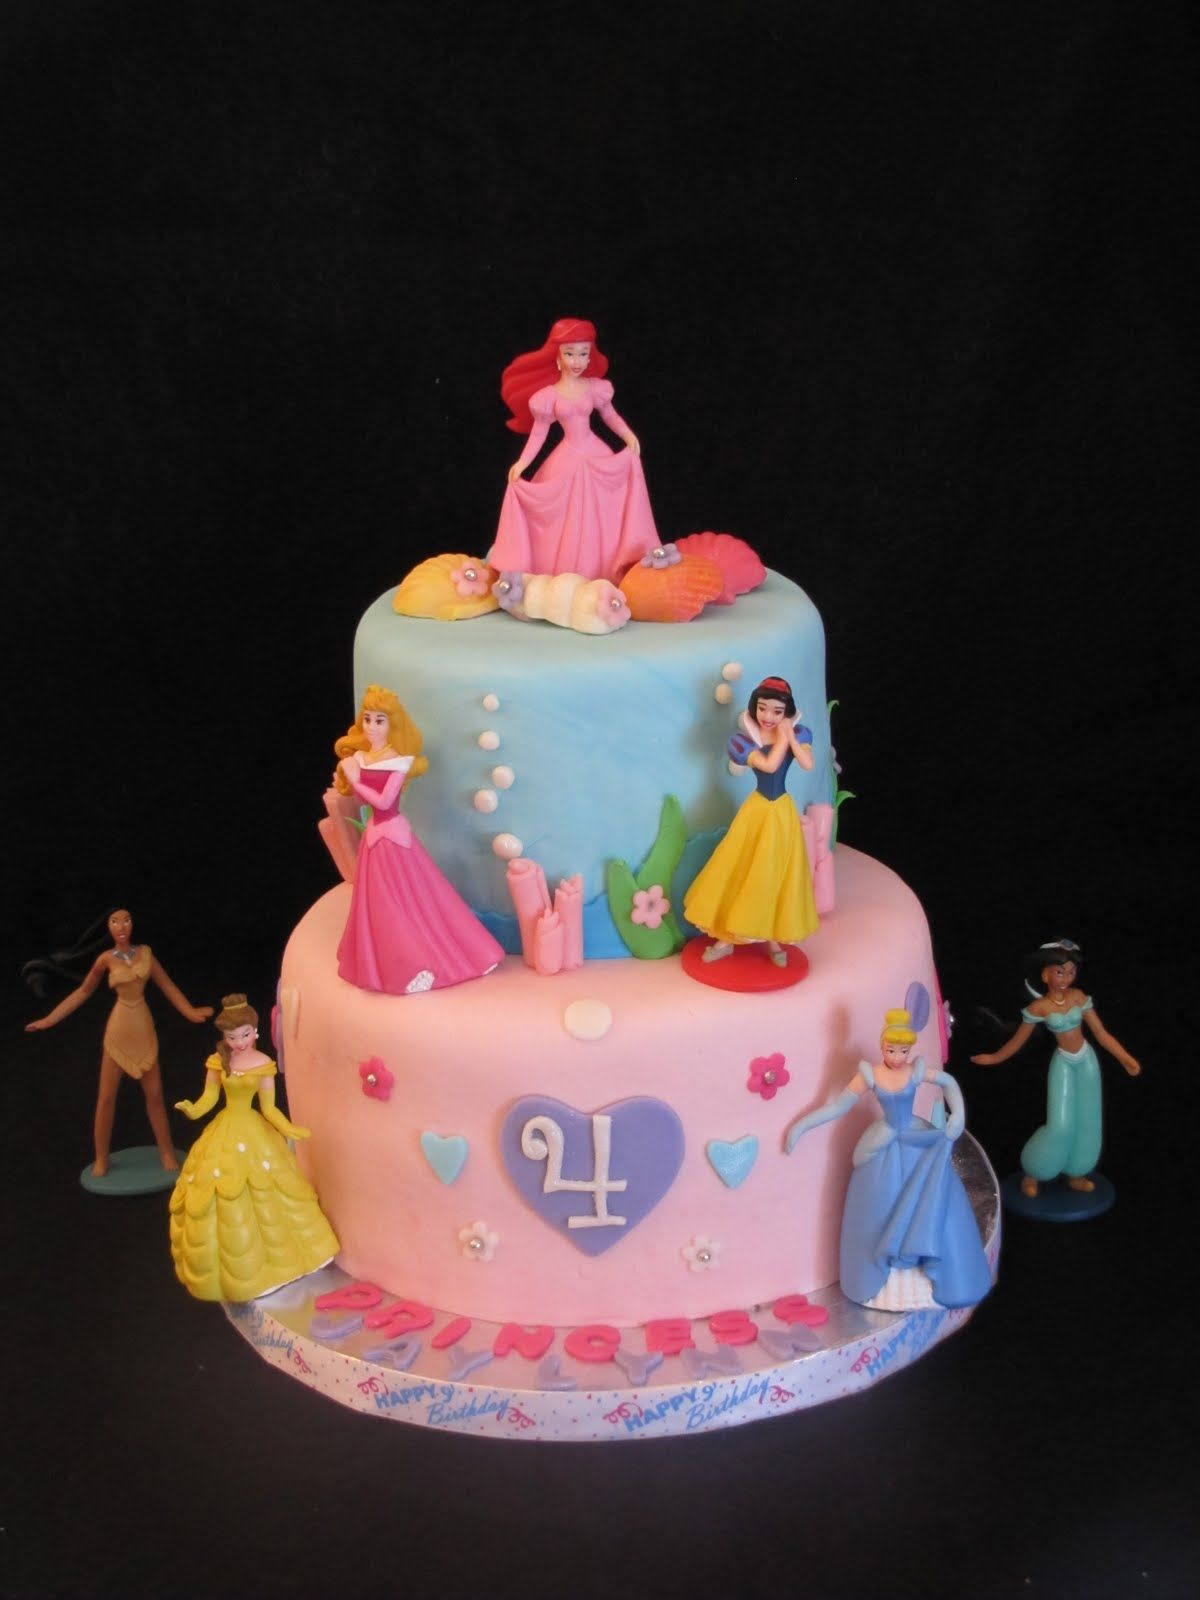 Disney princess cakecan we do this Ashley Phipps I can